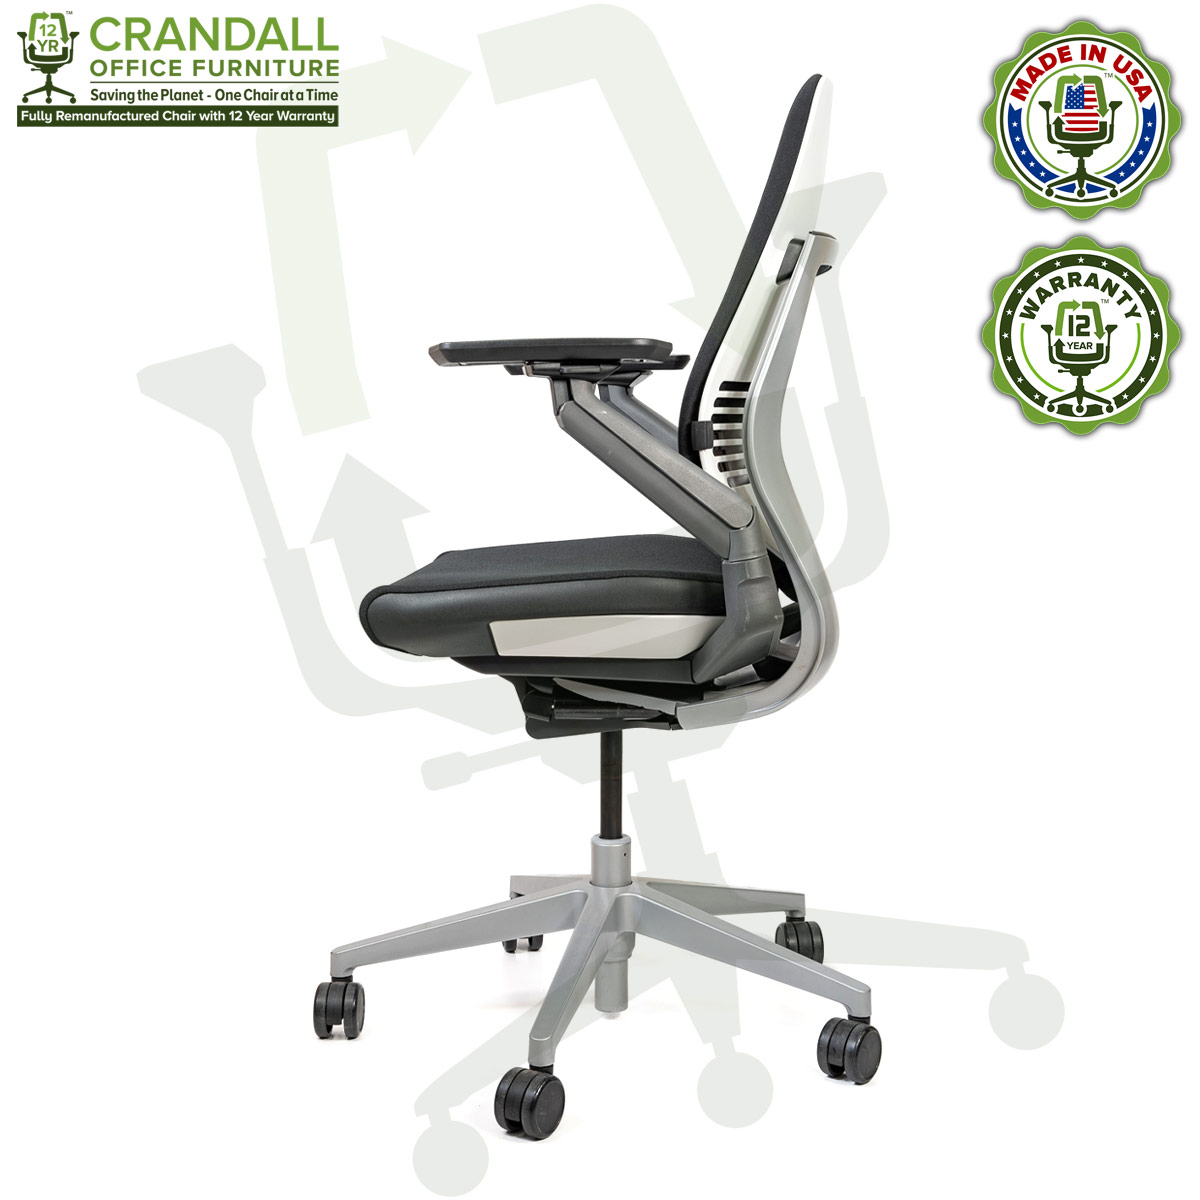 Crandall Remanufactured Steelcase Gesture Chair 03